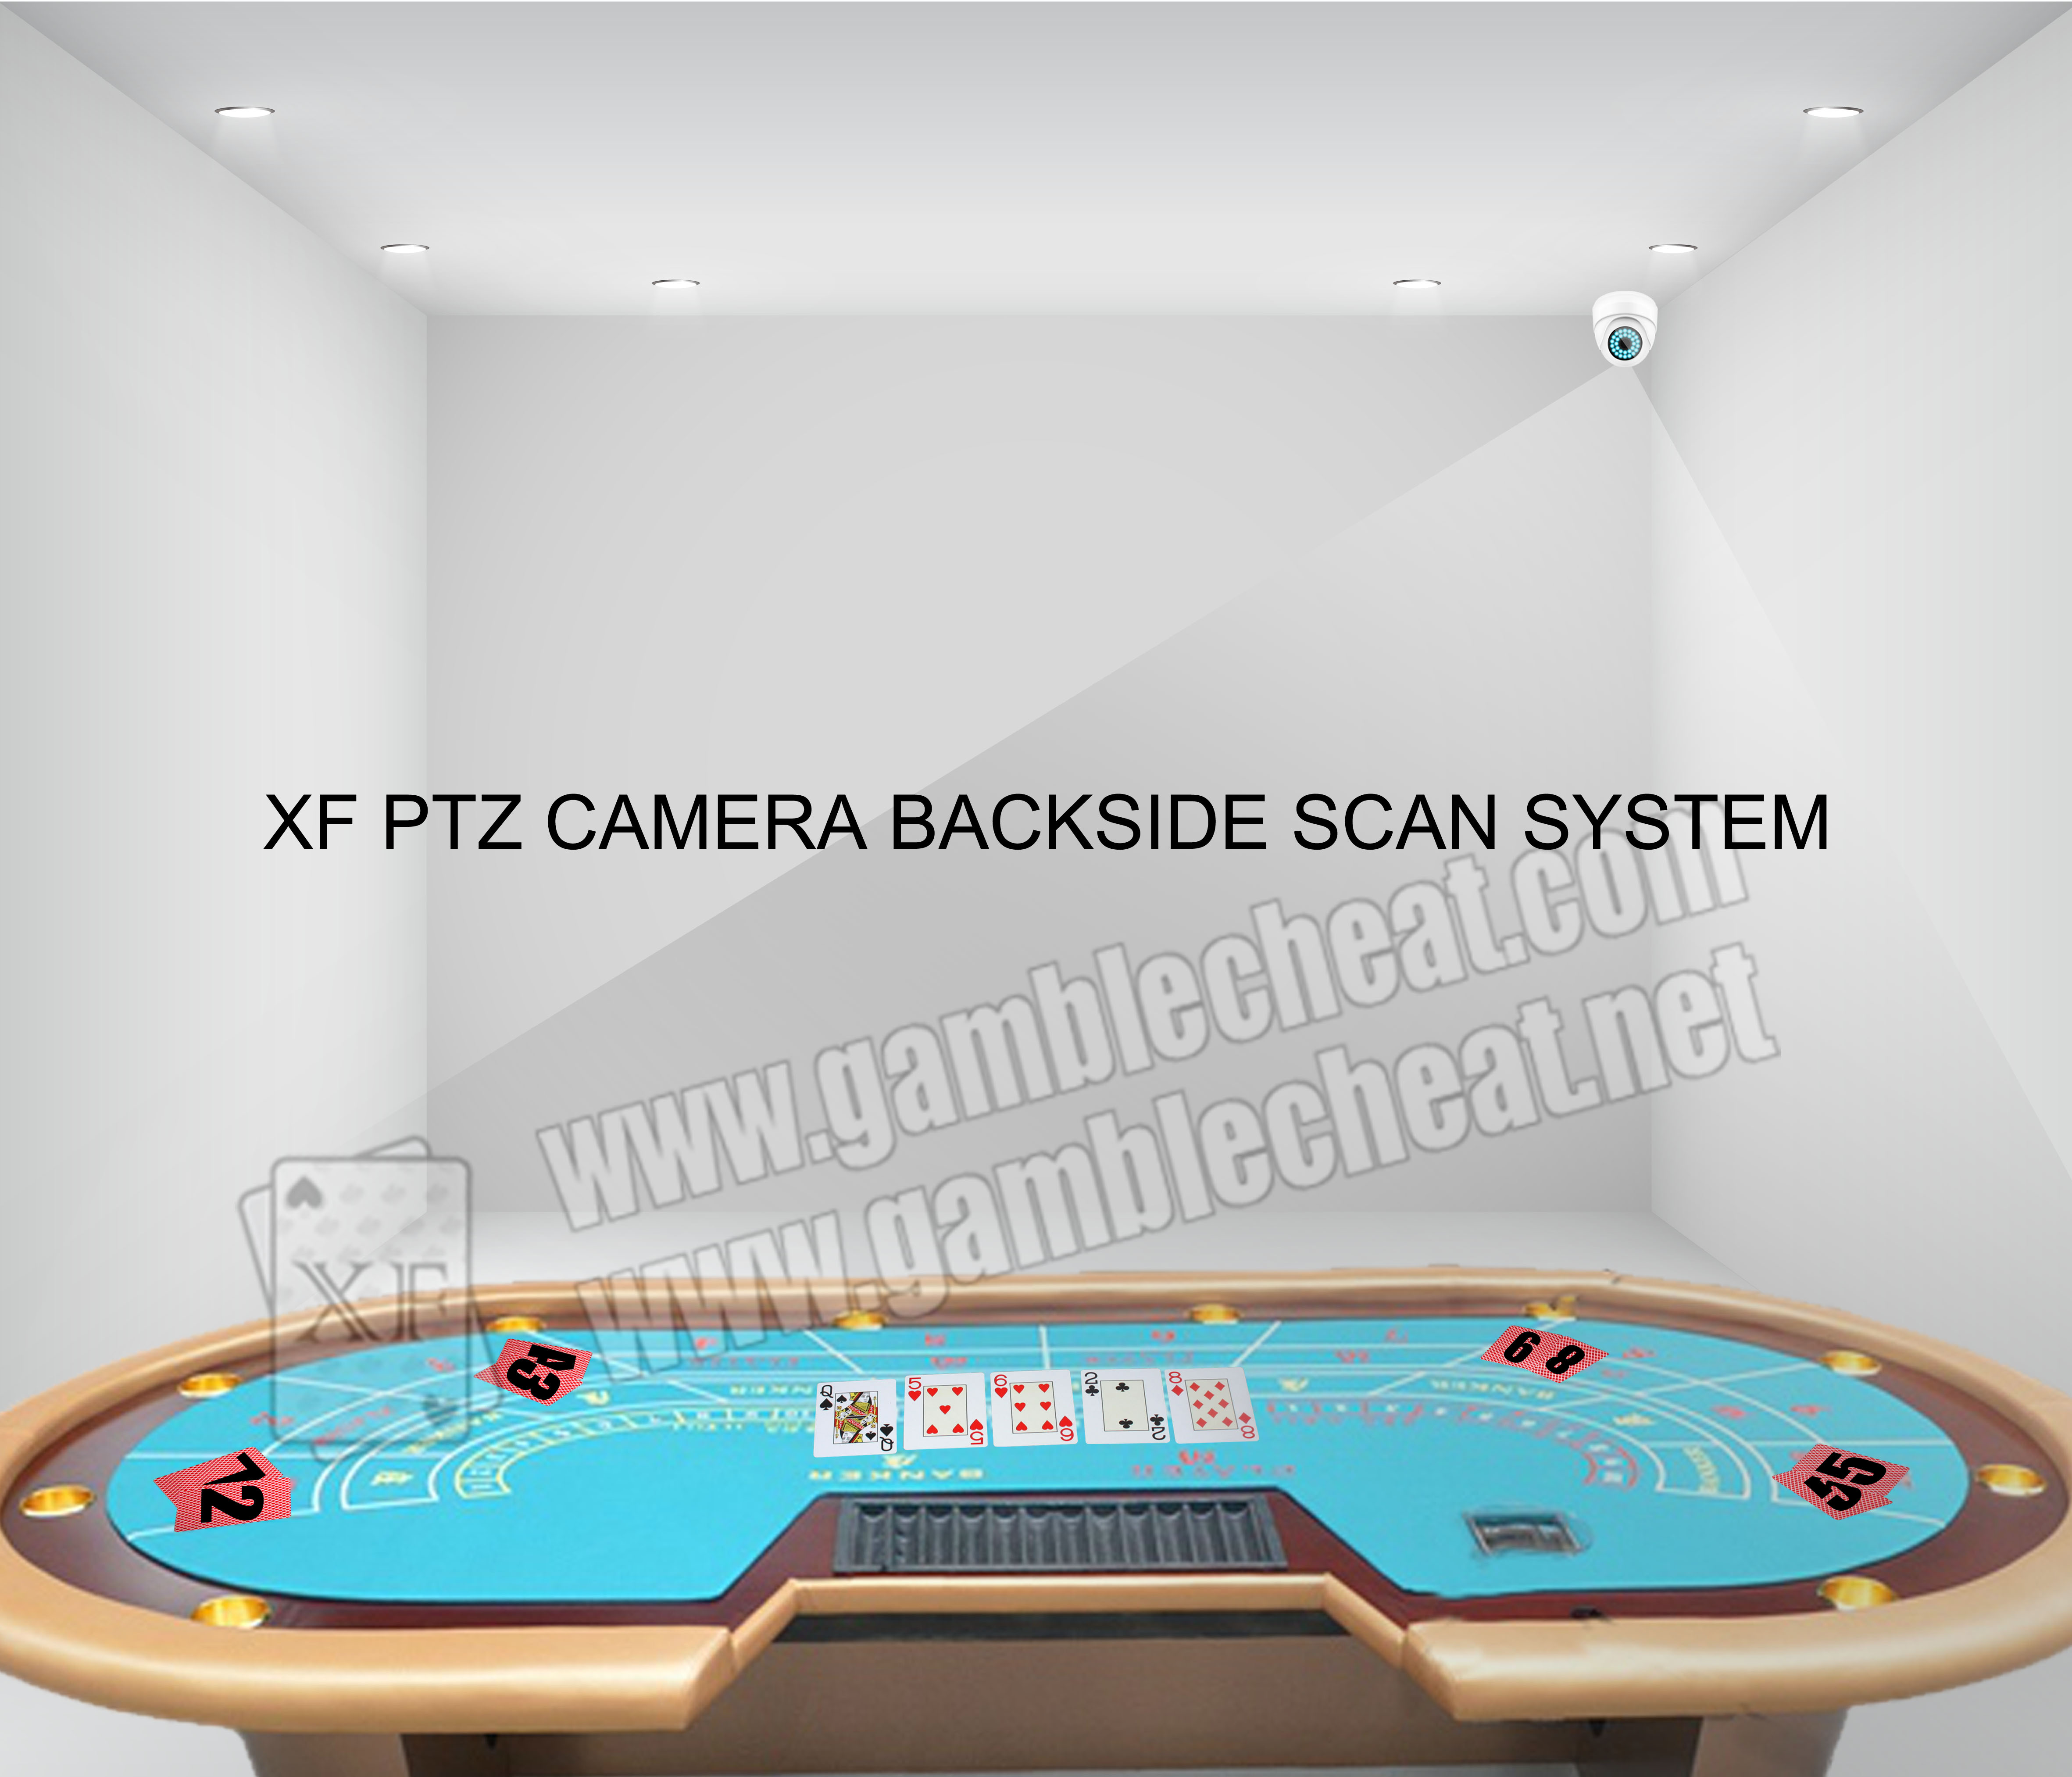 XF brand new PTZ backside marking camera for backside marking playing cards/ playing cards china / marked cards china / poker cheat / texas hold em cheat / omaha cheat / cheat in poker / cheat poker /